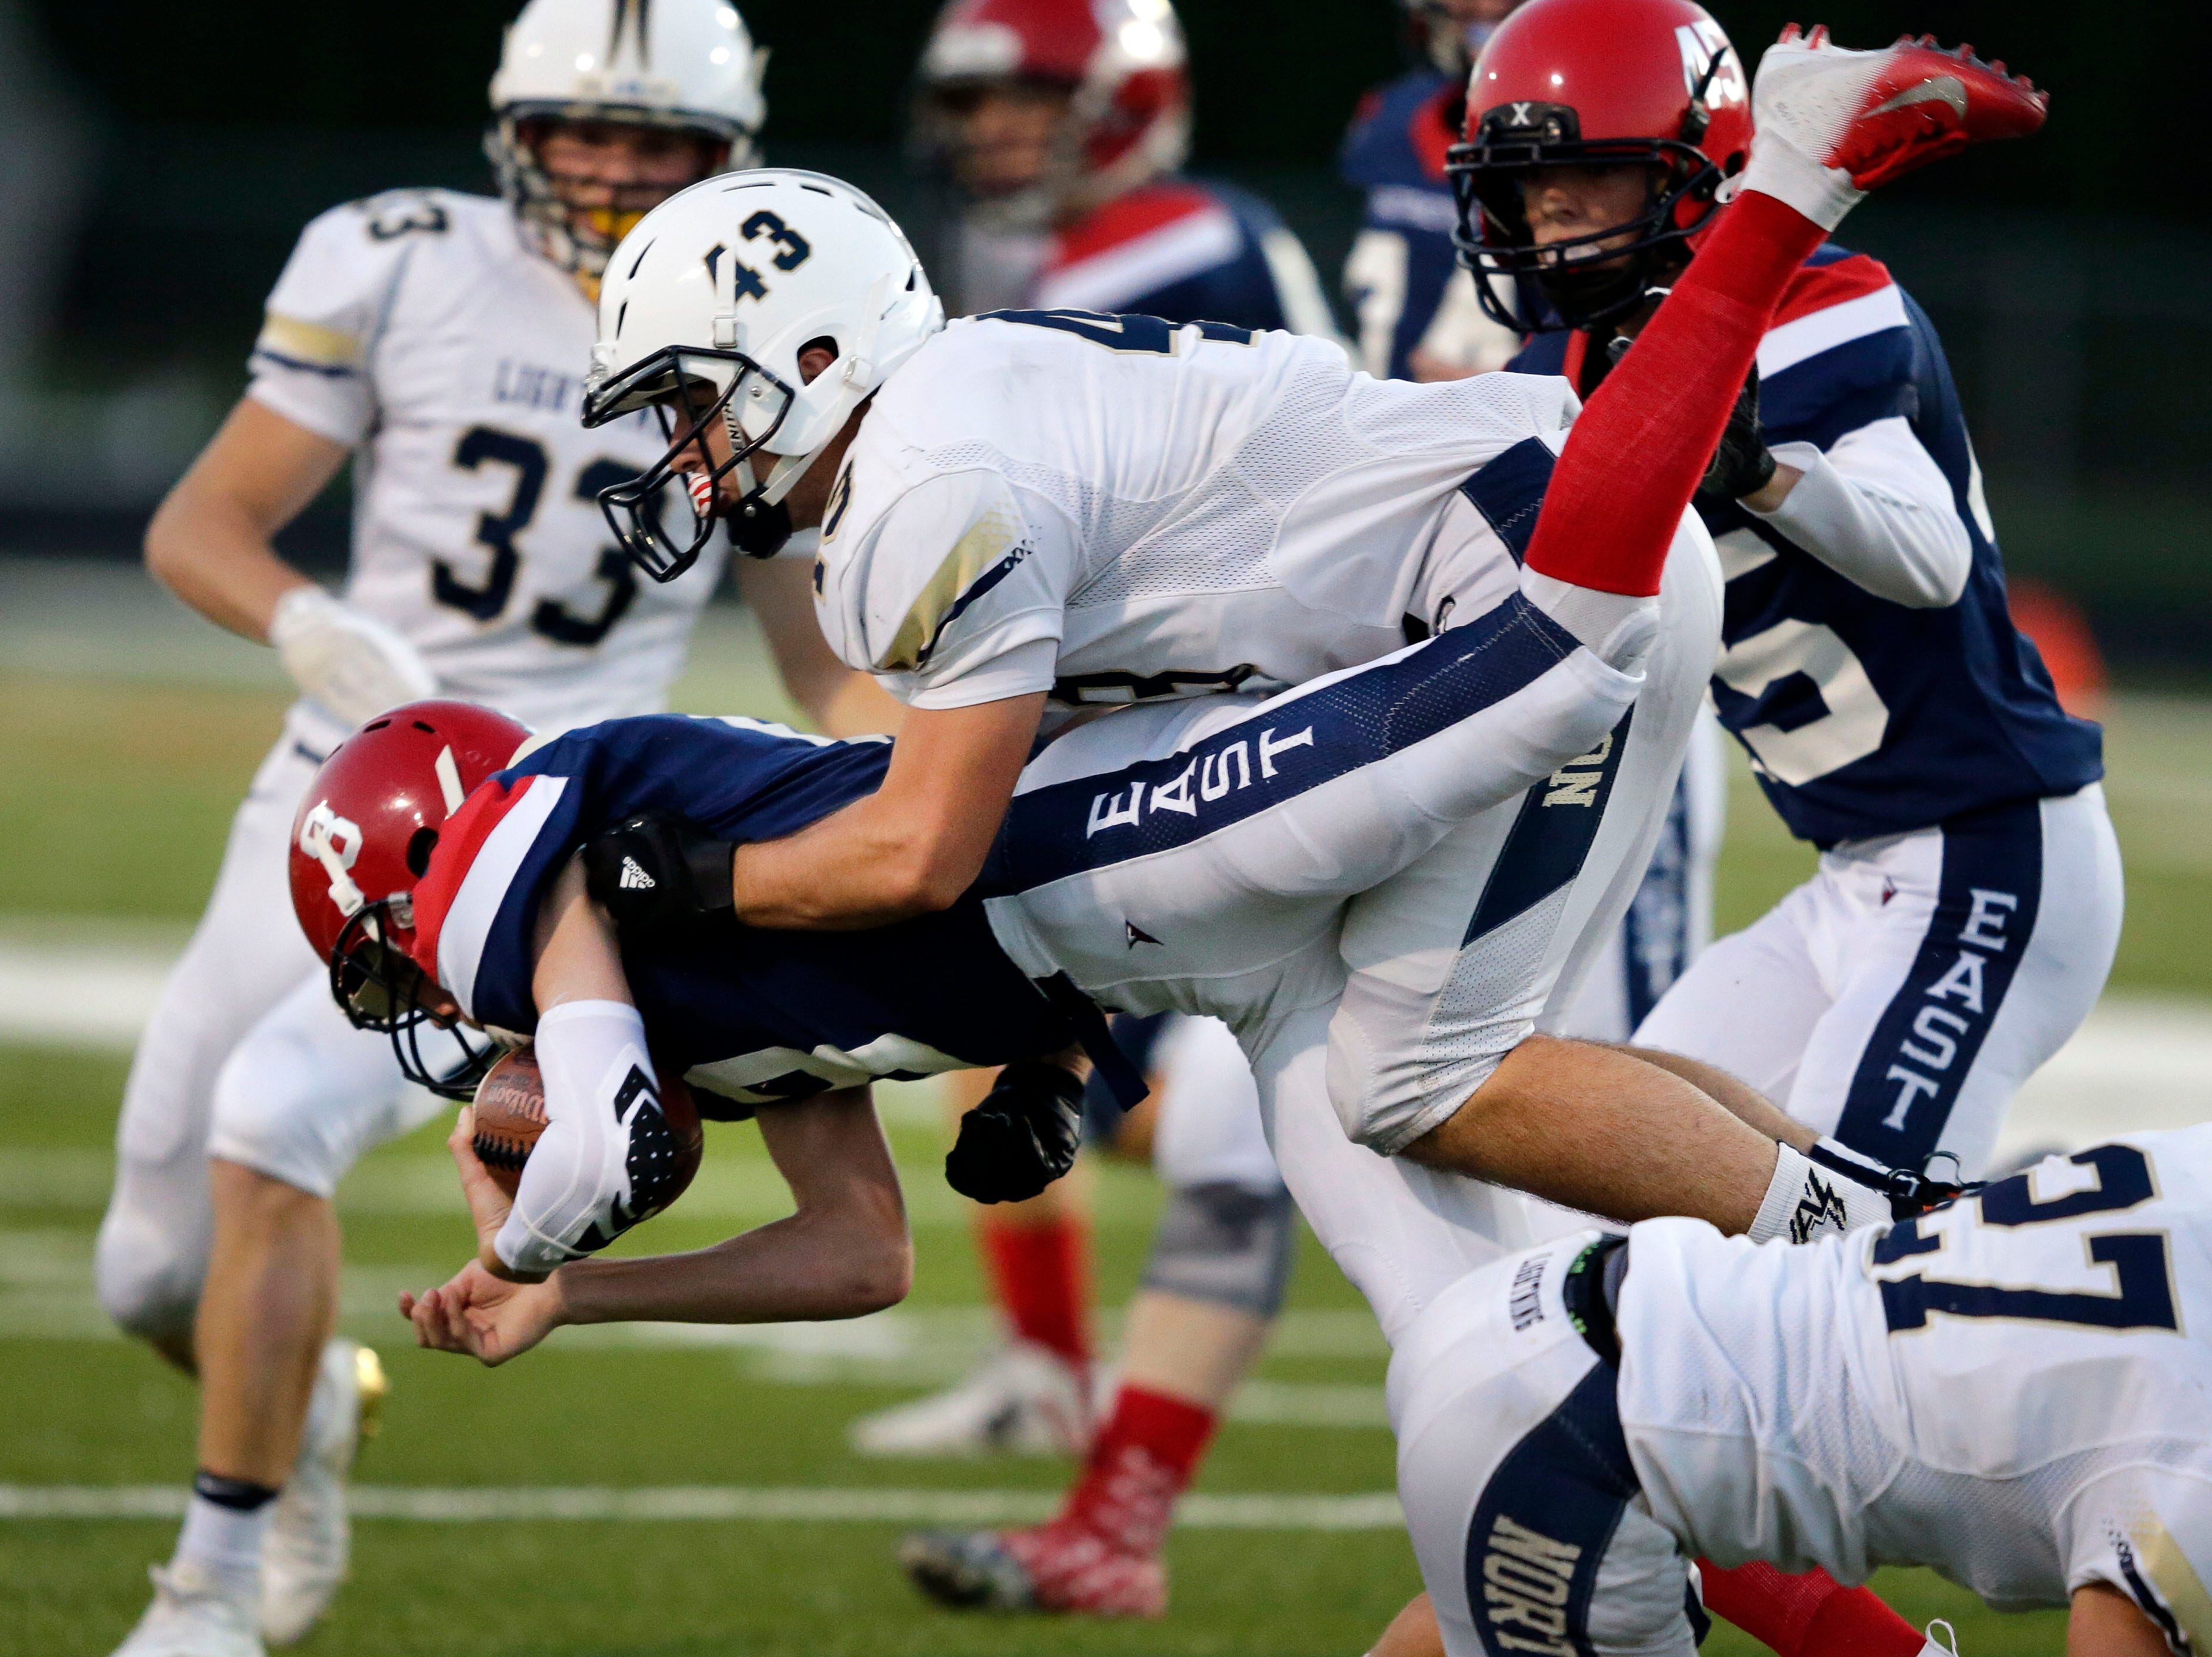 Ryan Latour of Appleton East is tackled by Nathan Smoll of Appleton North in a Valley Football Association game Friday, September 14, 2018, at Appleton East High School in Appleton, Wis.Ron Page/USA TODAY NETWORK-Wisconsin